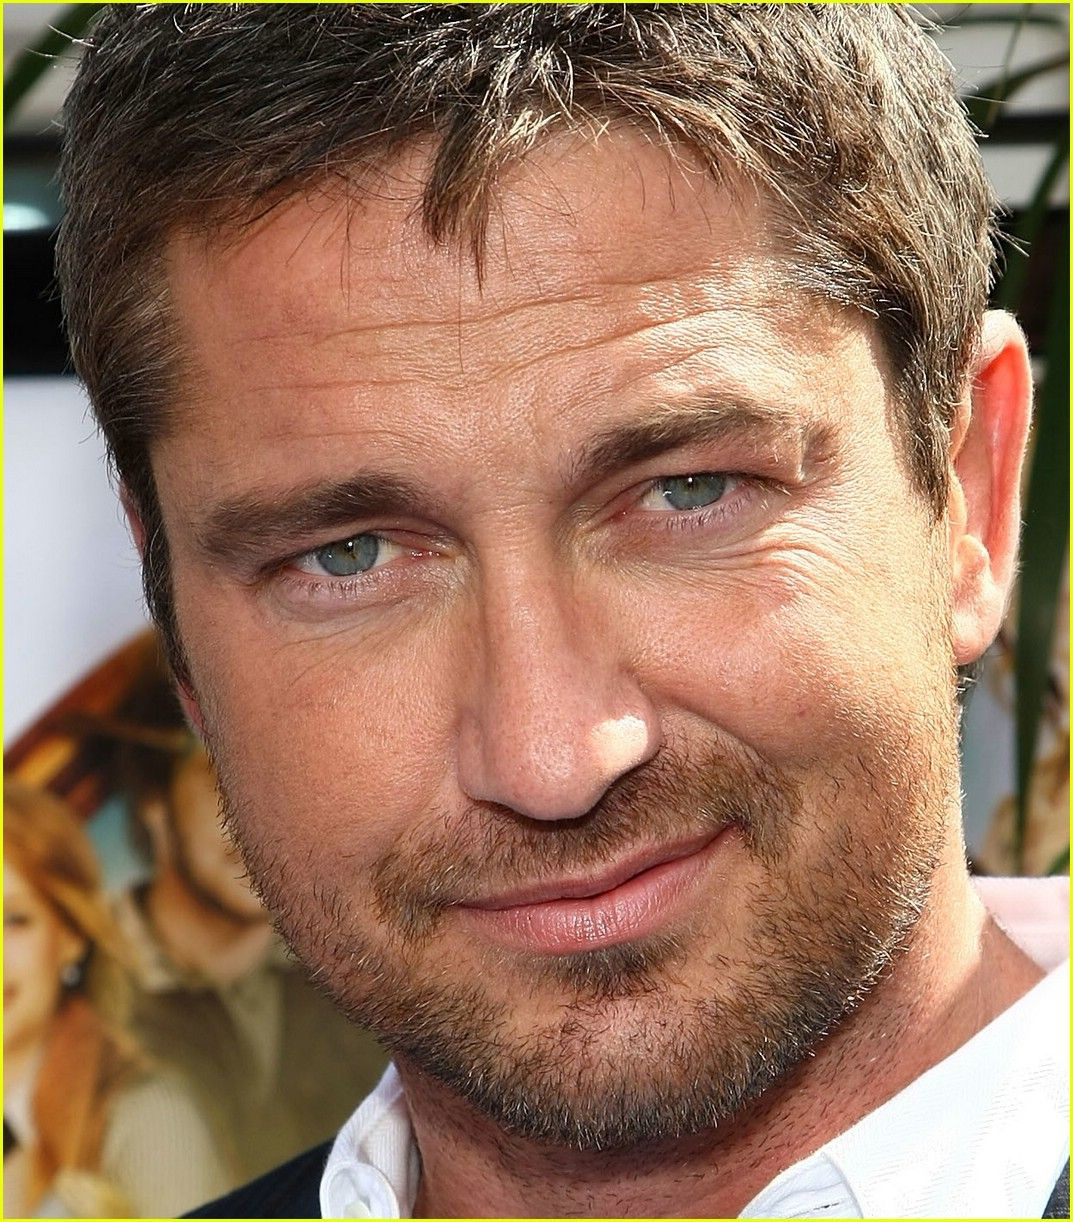 gerard butler filmlerigerard butler filmleri, gerard butler instagram, gerard butler 2016, gerard butler films, gerard butler gif, gerard butler - the phantom of the opera, gerard butler height, gerard butler 2017, gerard butler filmography, gerard butler wiki, gerard butler vk, gerard butler and morgan brown, gerard butler imdb, gerard butler wife, gerard butler filme, gerard butler facebook, gerard butler phantom, gerard butler movies, gerard butler фото, gerard butler twitter